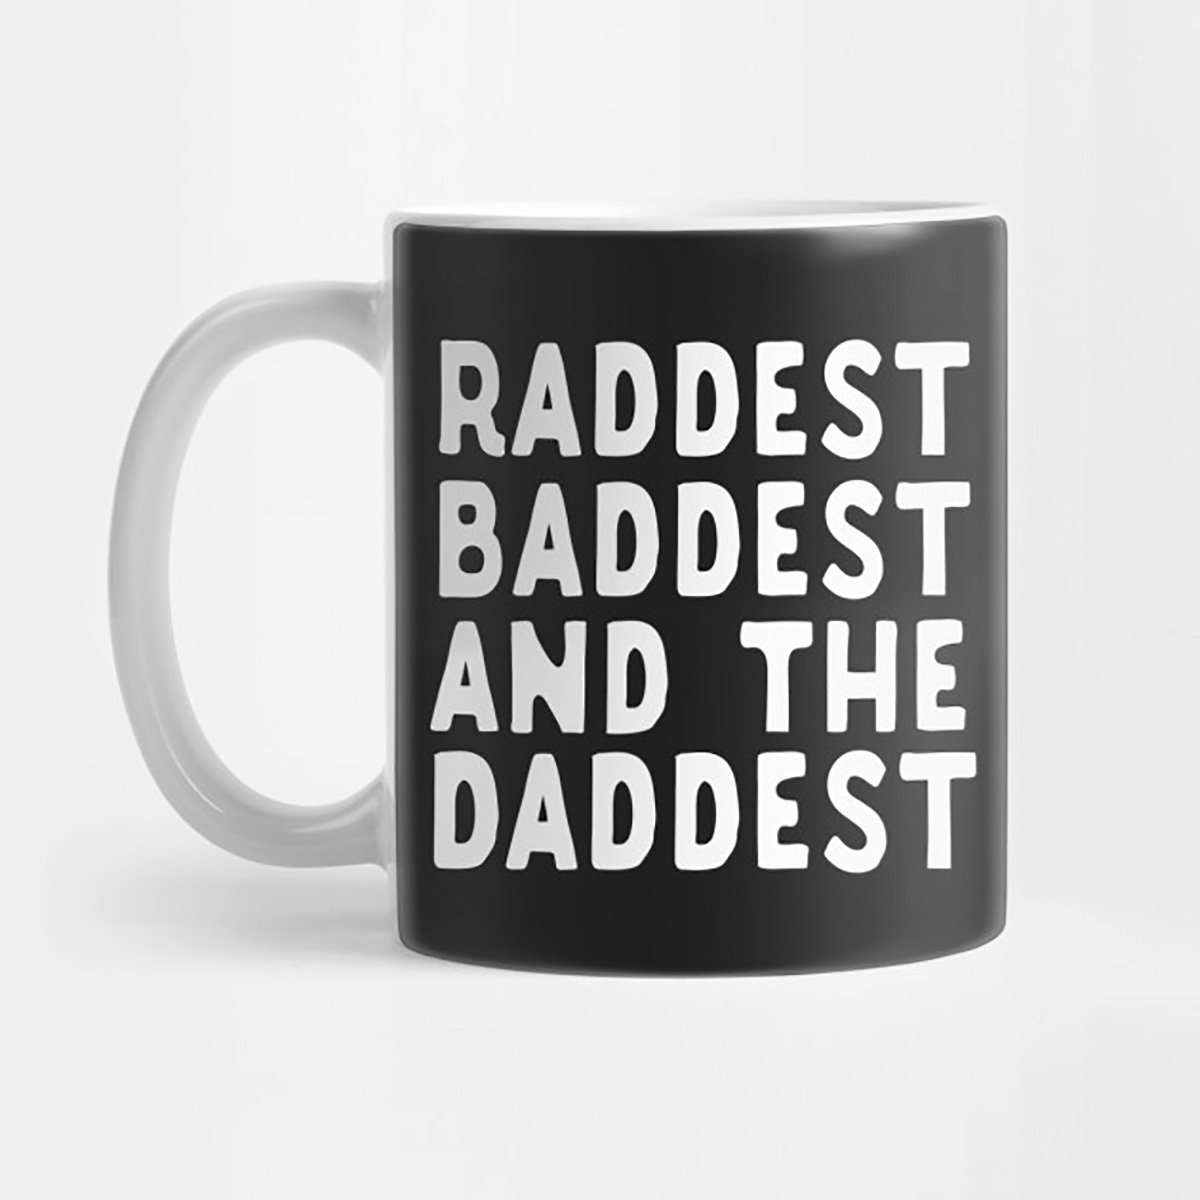 artsonia Raddest Baddest and the daddest父の日ギフトMug B07DSW5KXT